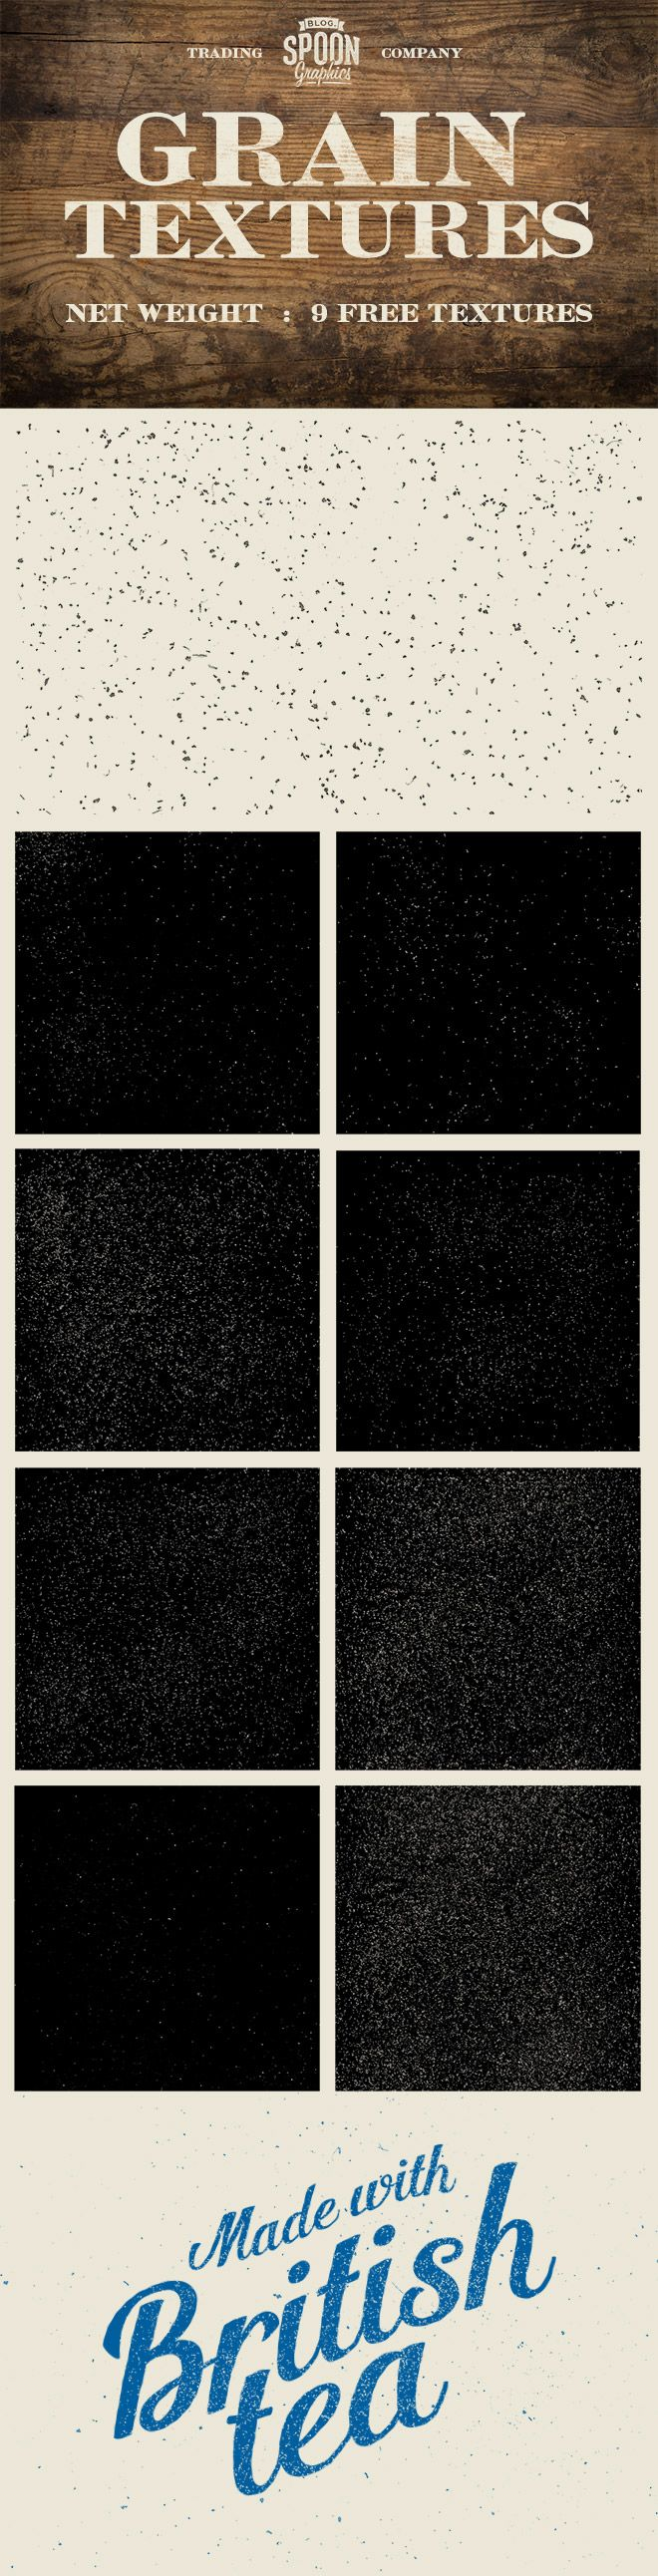 9 Free High Resolution Grain Textures in JPG & PNG Format